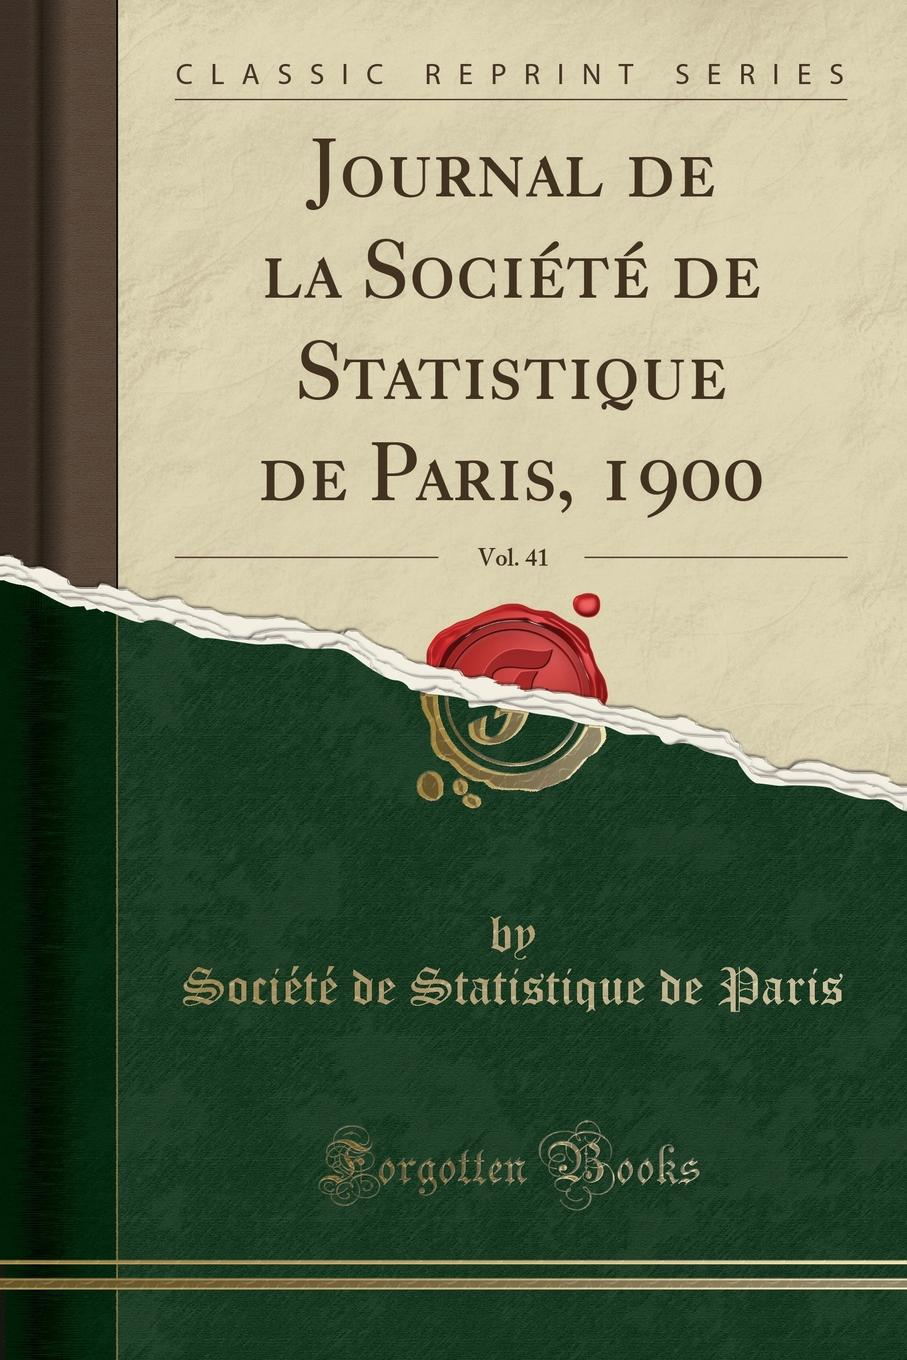 Journal de la Societe de Statistique de Paris, 1900, Vol. 41 (Classic Reprint) Excerpt from Journal de la SociР?tР? de Statistique de Paris, 1900...